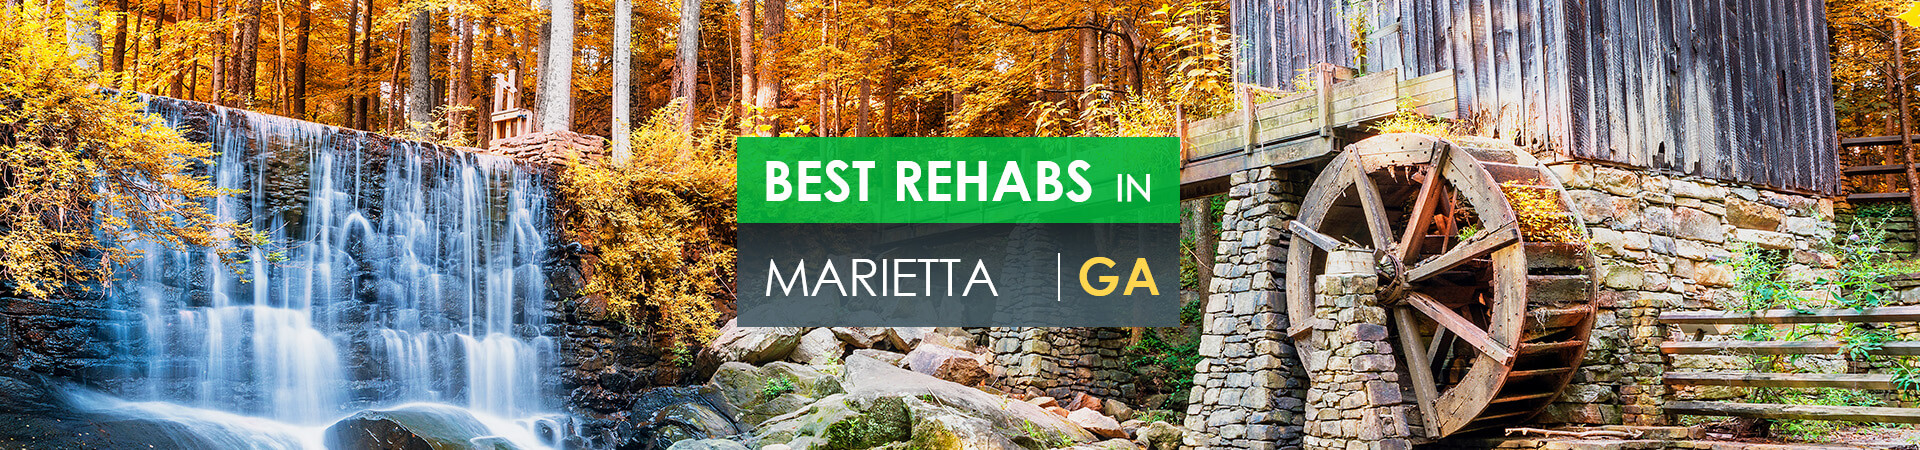 Best rehabs in Marietta, GA